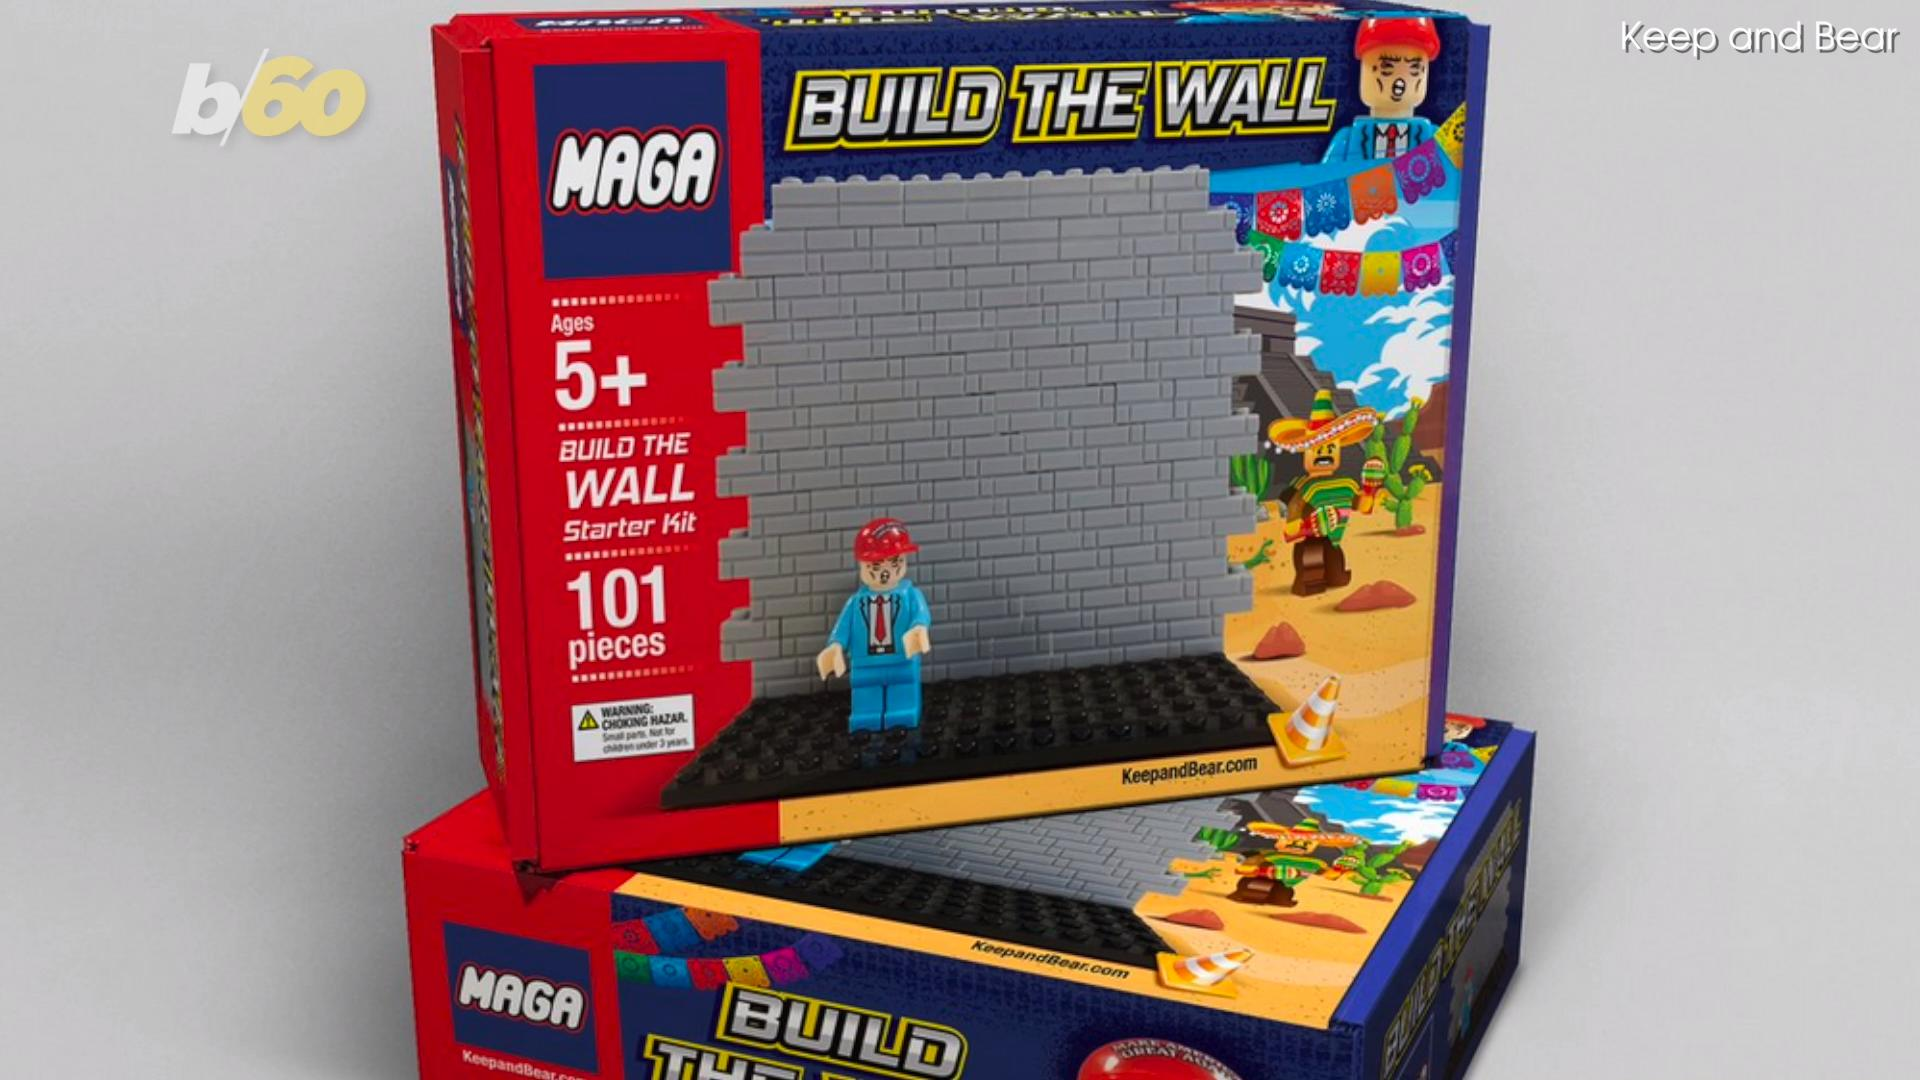 MAGA building blocks set allows children to 'build the wall'